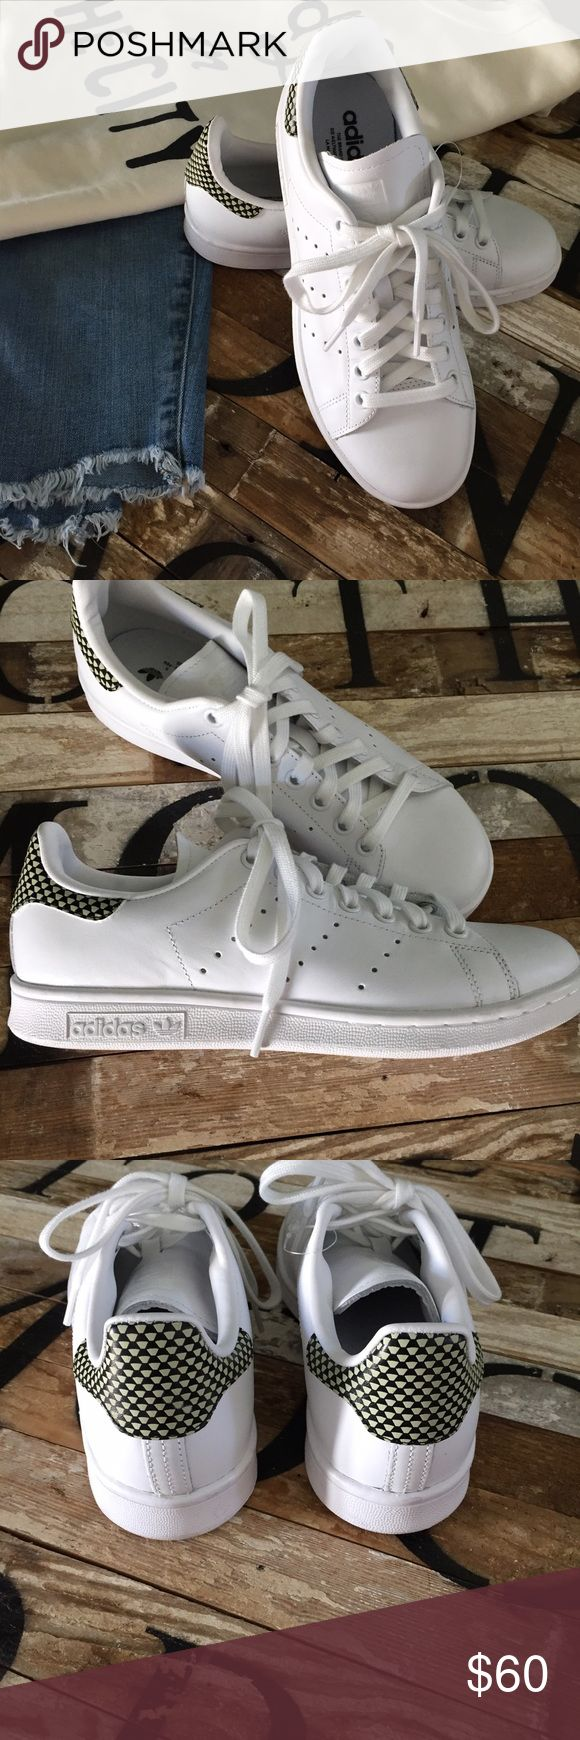 🆕 Adidas 👟👟Stan Smiths 👟👟 Brand-new, only tried on, never worn! All white leather with cool graphic back tab. These are marked a men's 6 1/2 which is equivalent to an 8 1/2 woman's. I'm a true nine and these are a little snug on me -only reason I'm letting these go!! If you are not sure of your size in these, please go to a store and try them on first. Smoke free home and fast shipper:) Adidas Stan Smith Shoes Sneakers